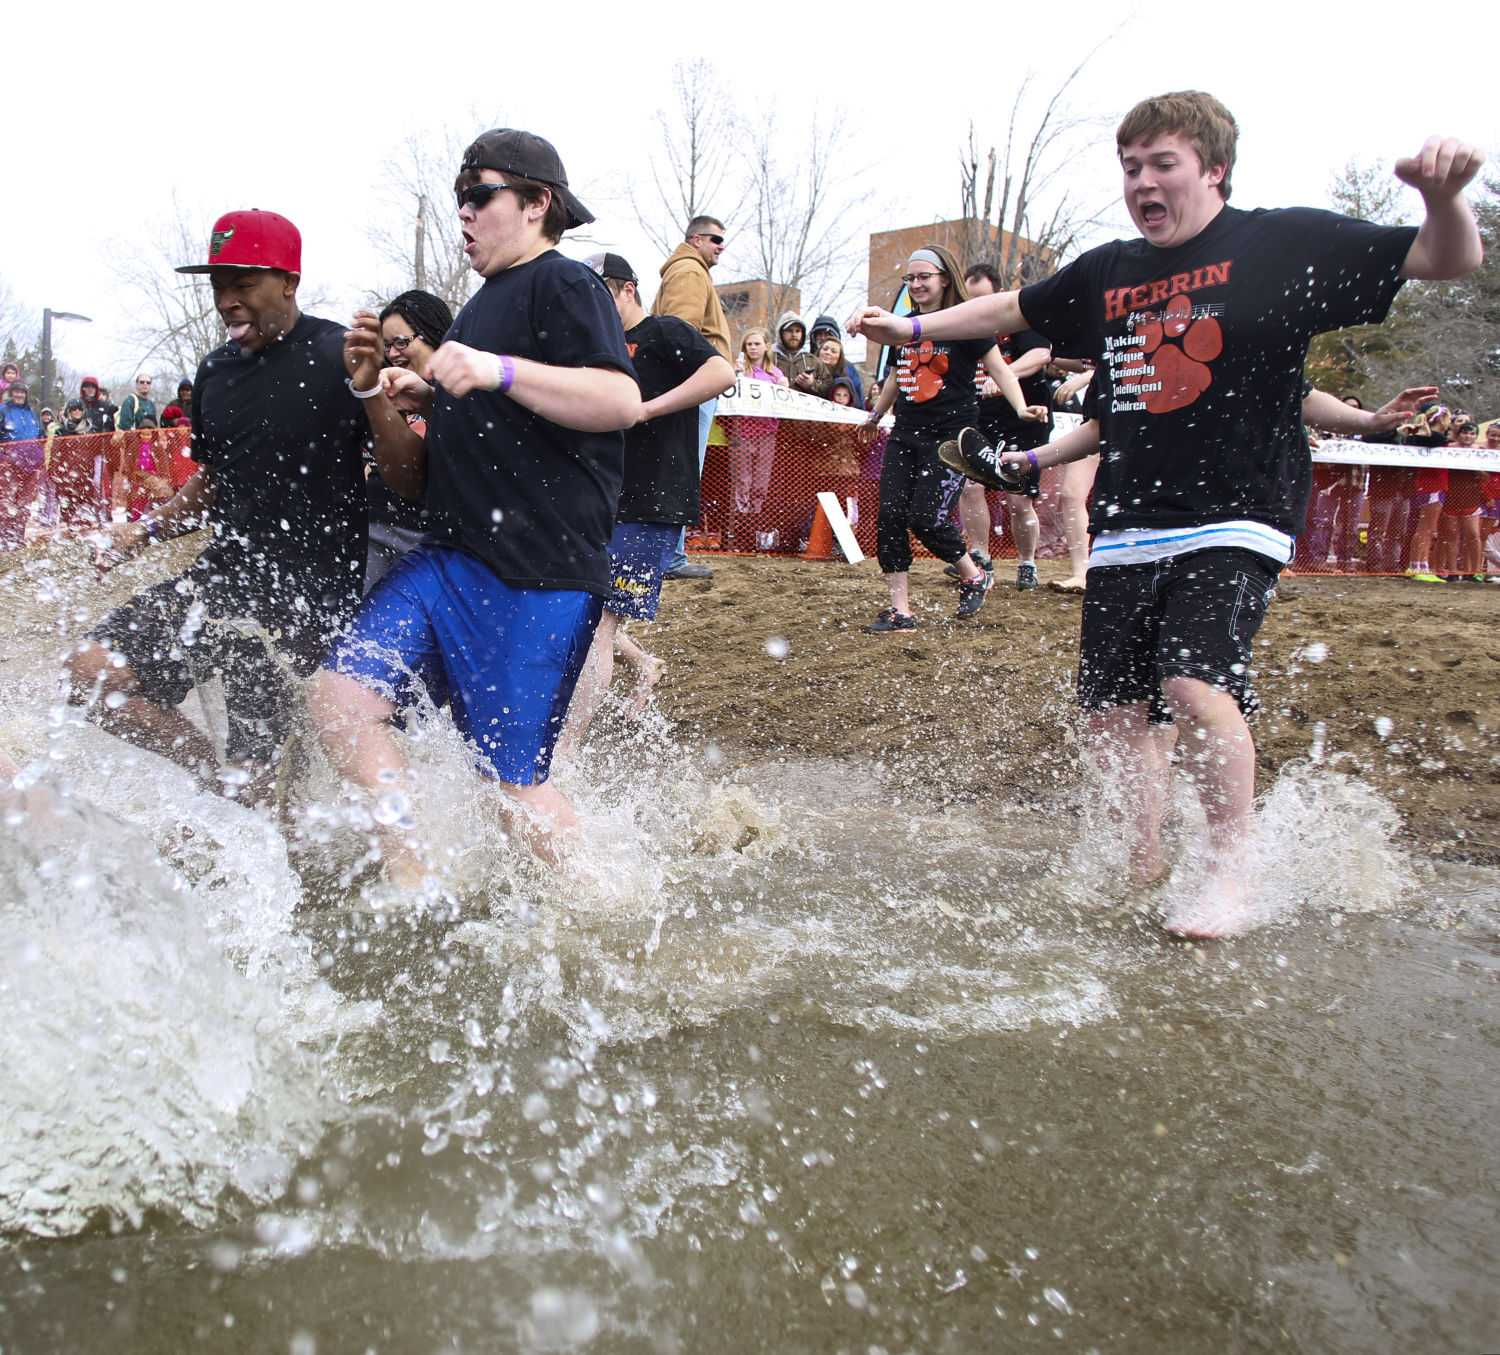 A group of students from Herrin run into Campus Lake on Saturday, Feb. 28, 2015 during the annual Polar Plunge. The event, which benefits the Special Olympics, raised $21,373.94 from 436 participants. (DailyEgyptian.com file photo)